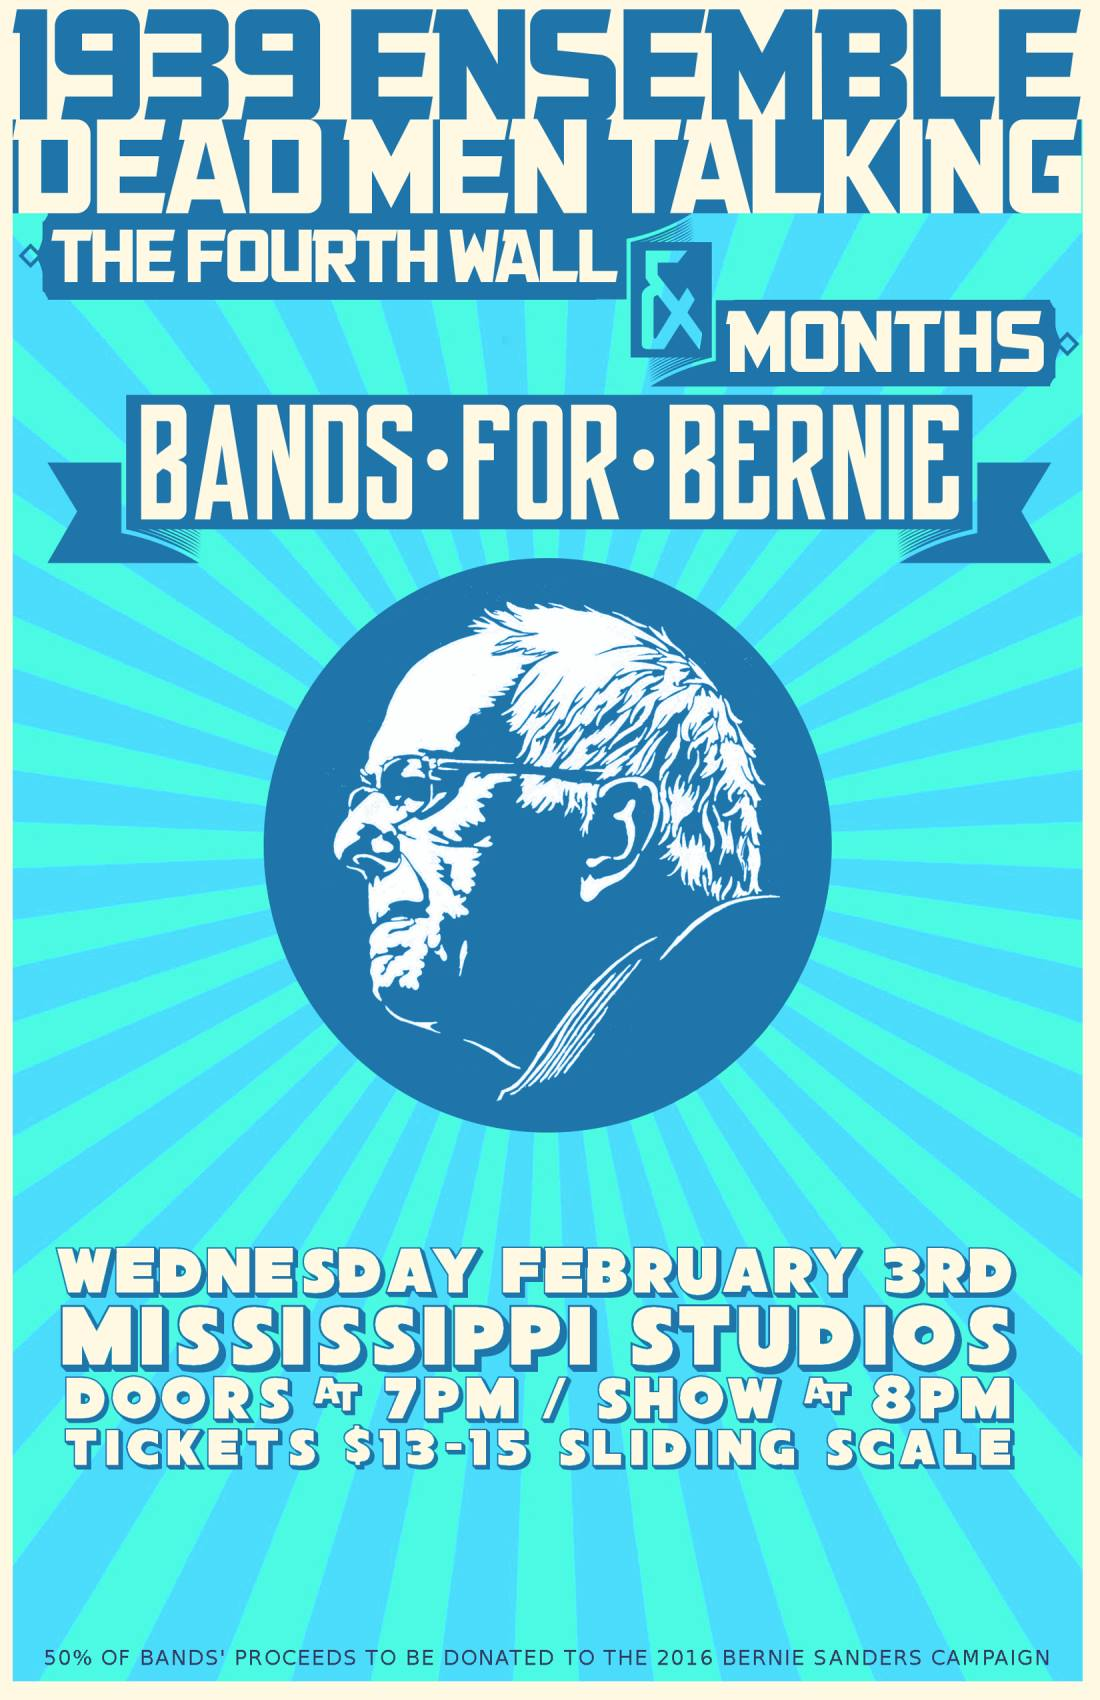 bands for bernie: months w/ 1939 ensemble, dead men talking & the fourth wall